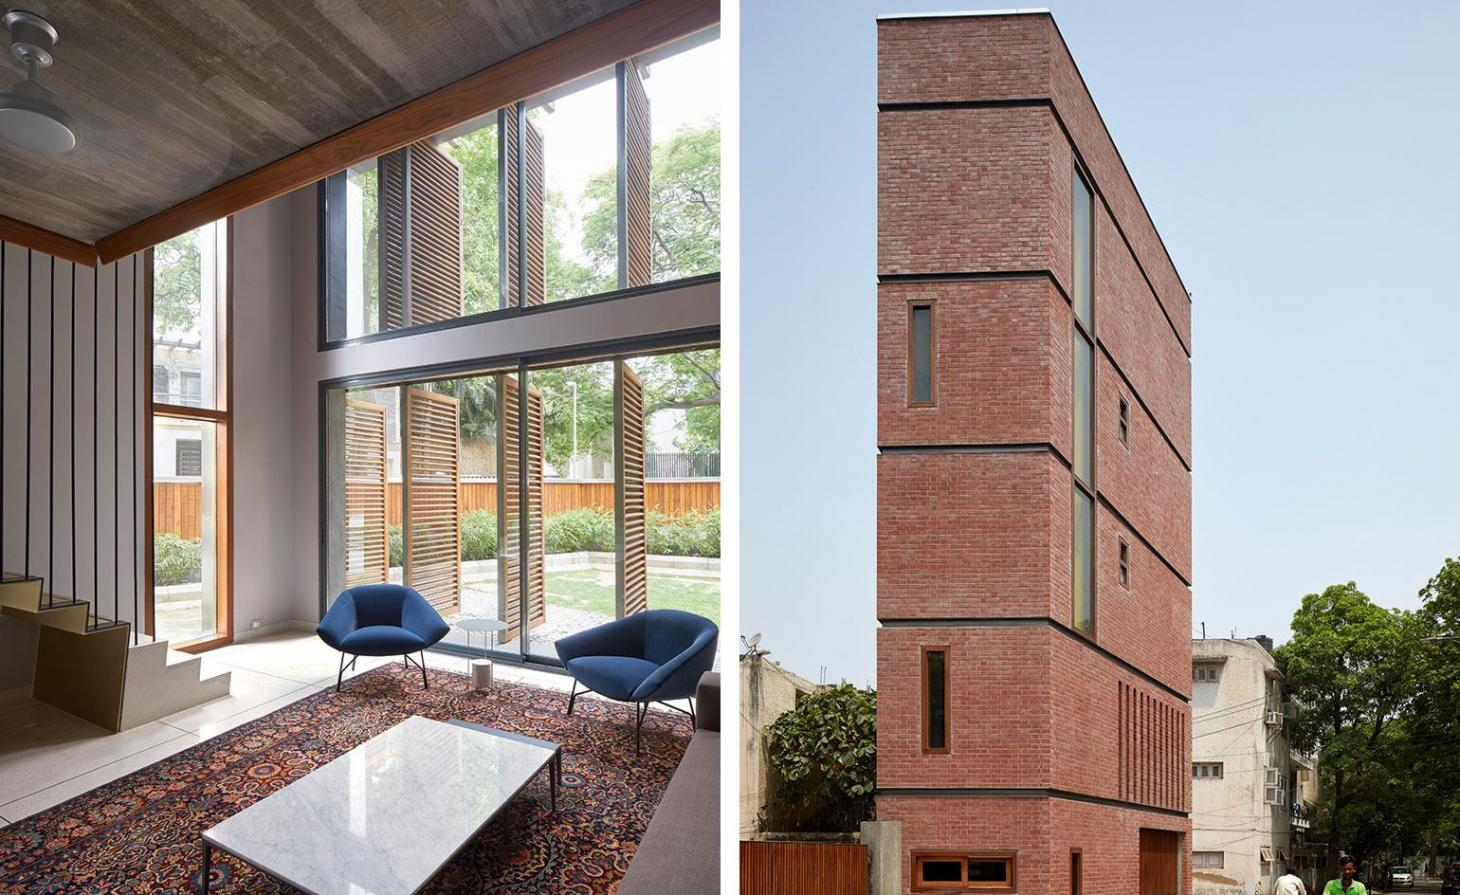 Brick House, New Delhi, India, by RKDS